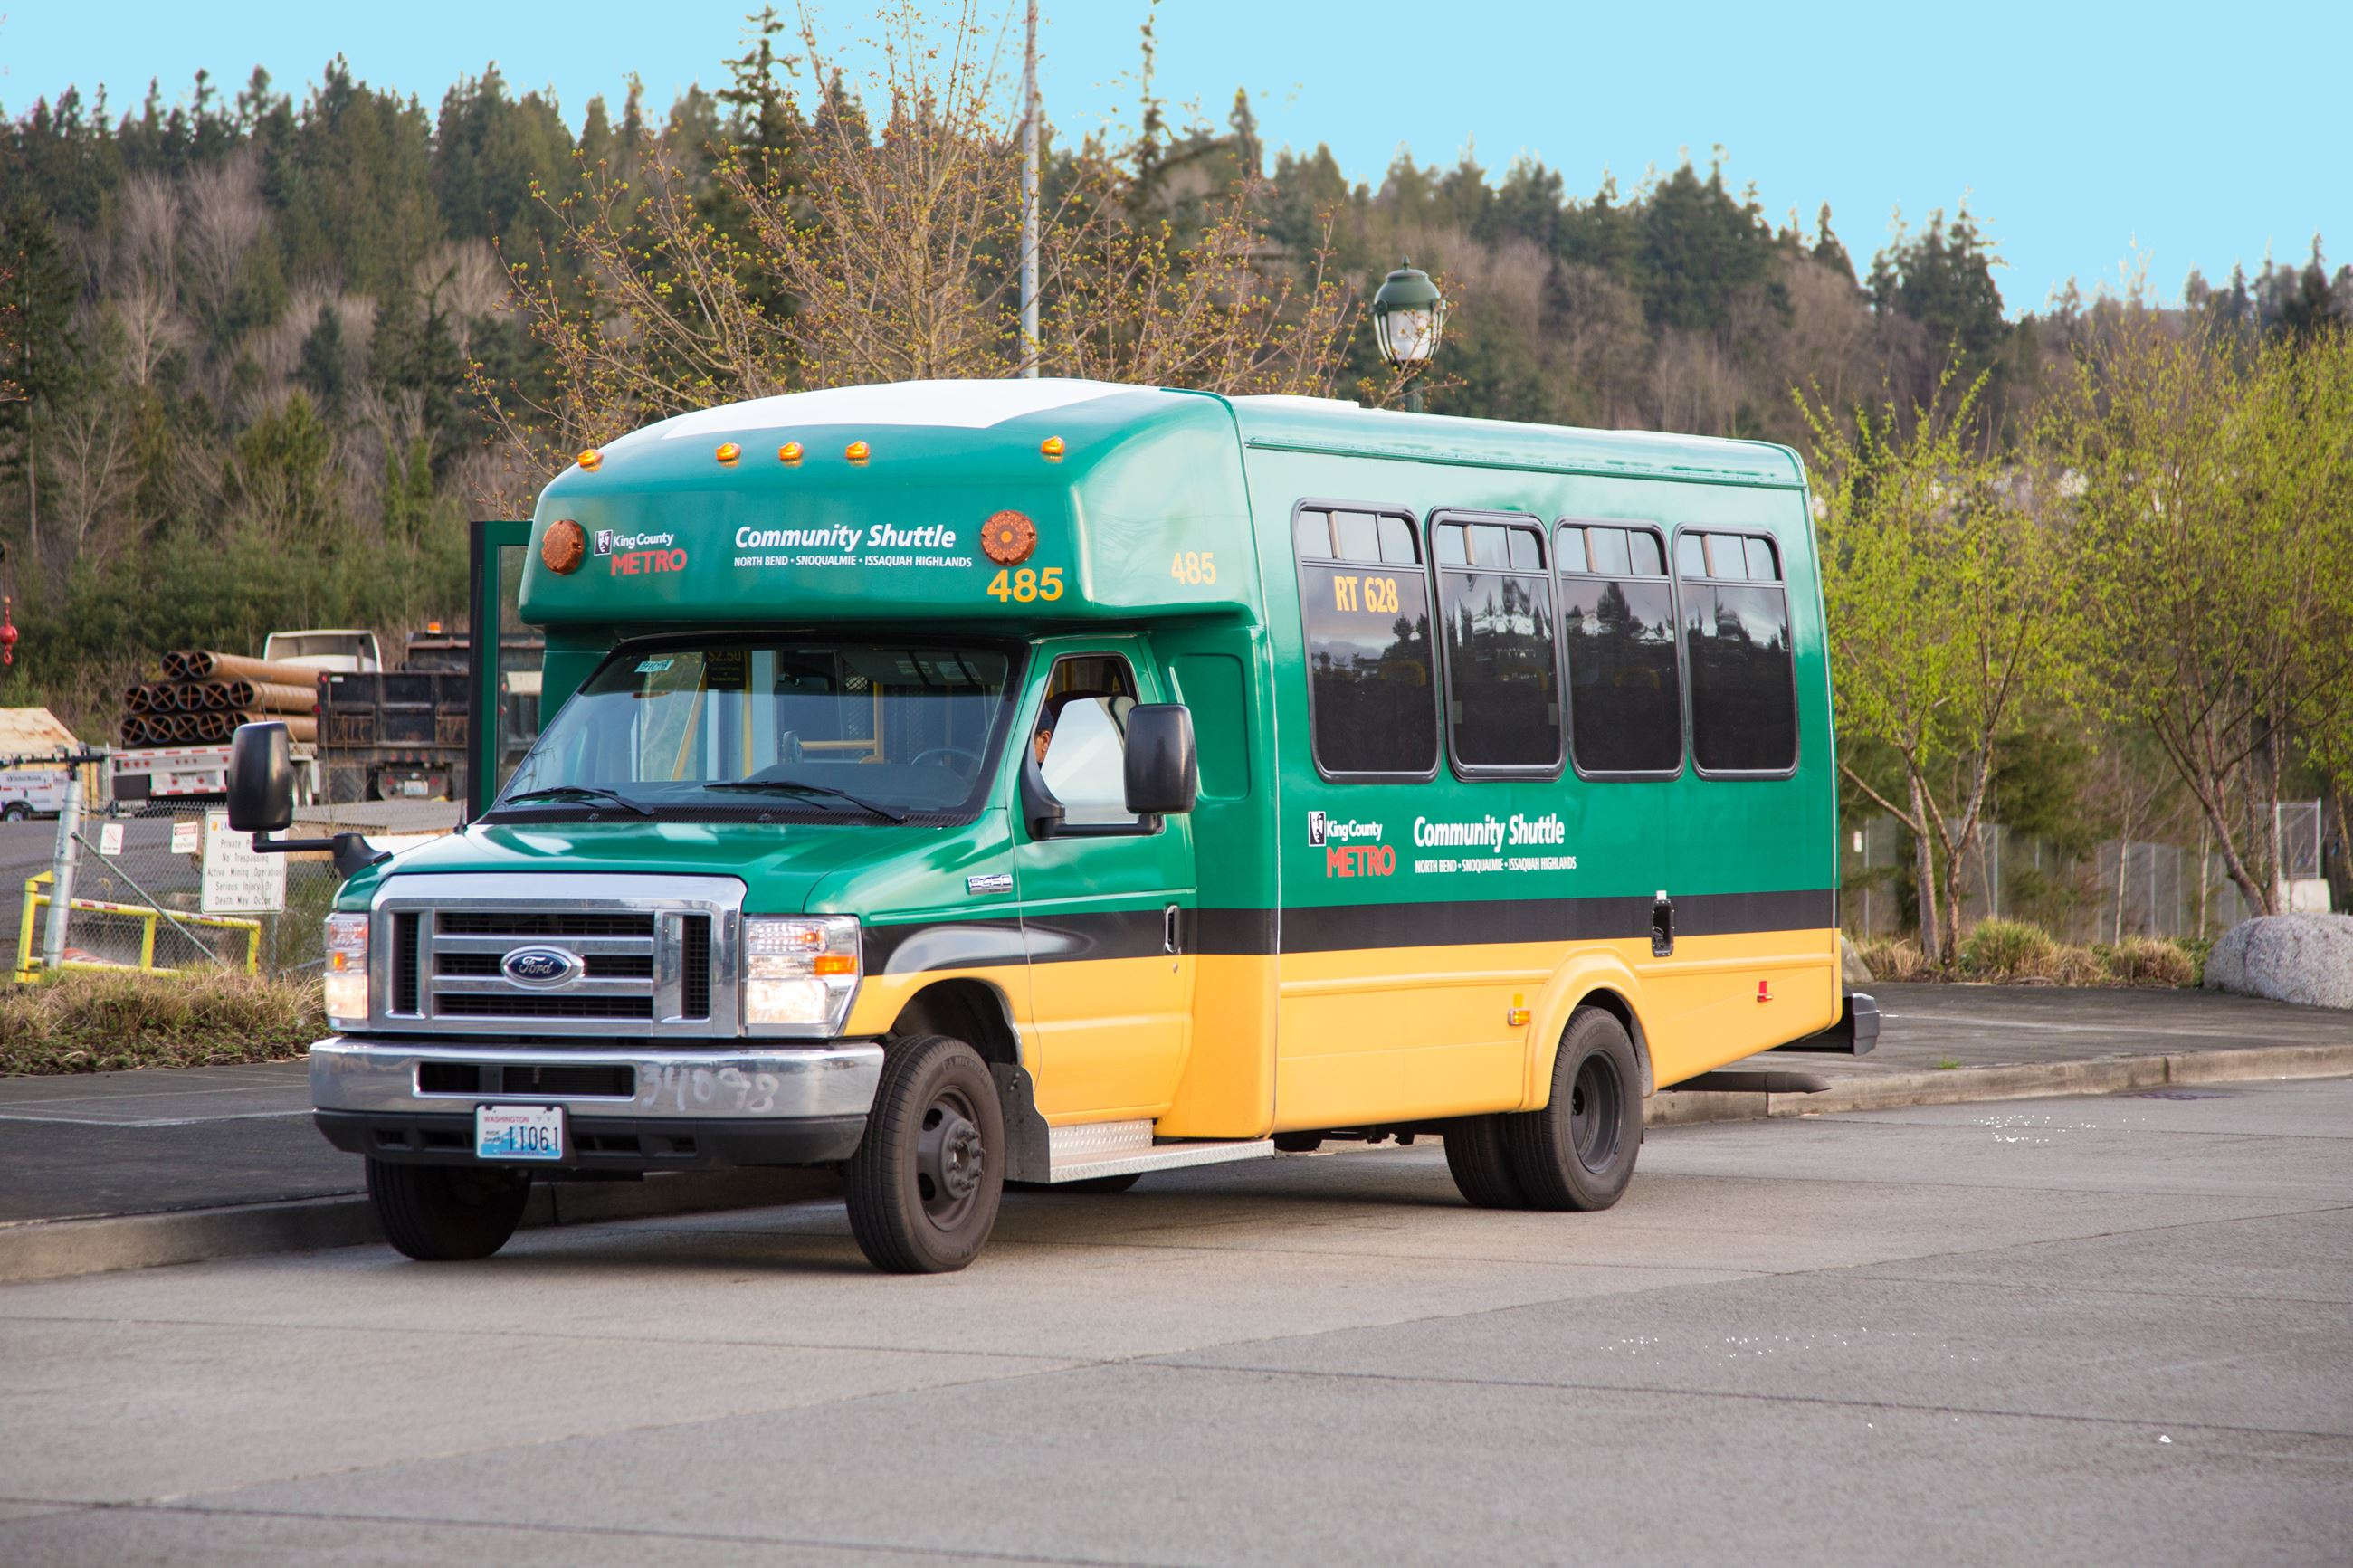 This is a picture of the Snoqualmie Valley Transportation Community Shuttle.